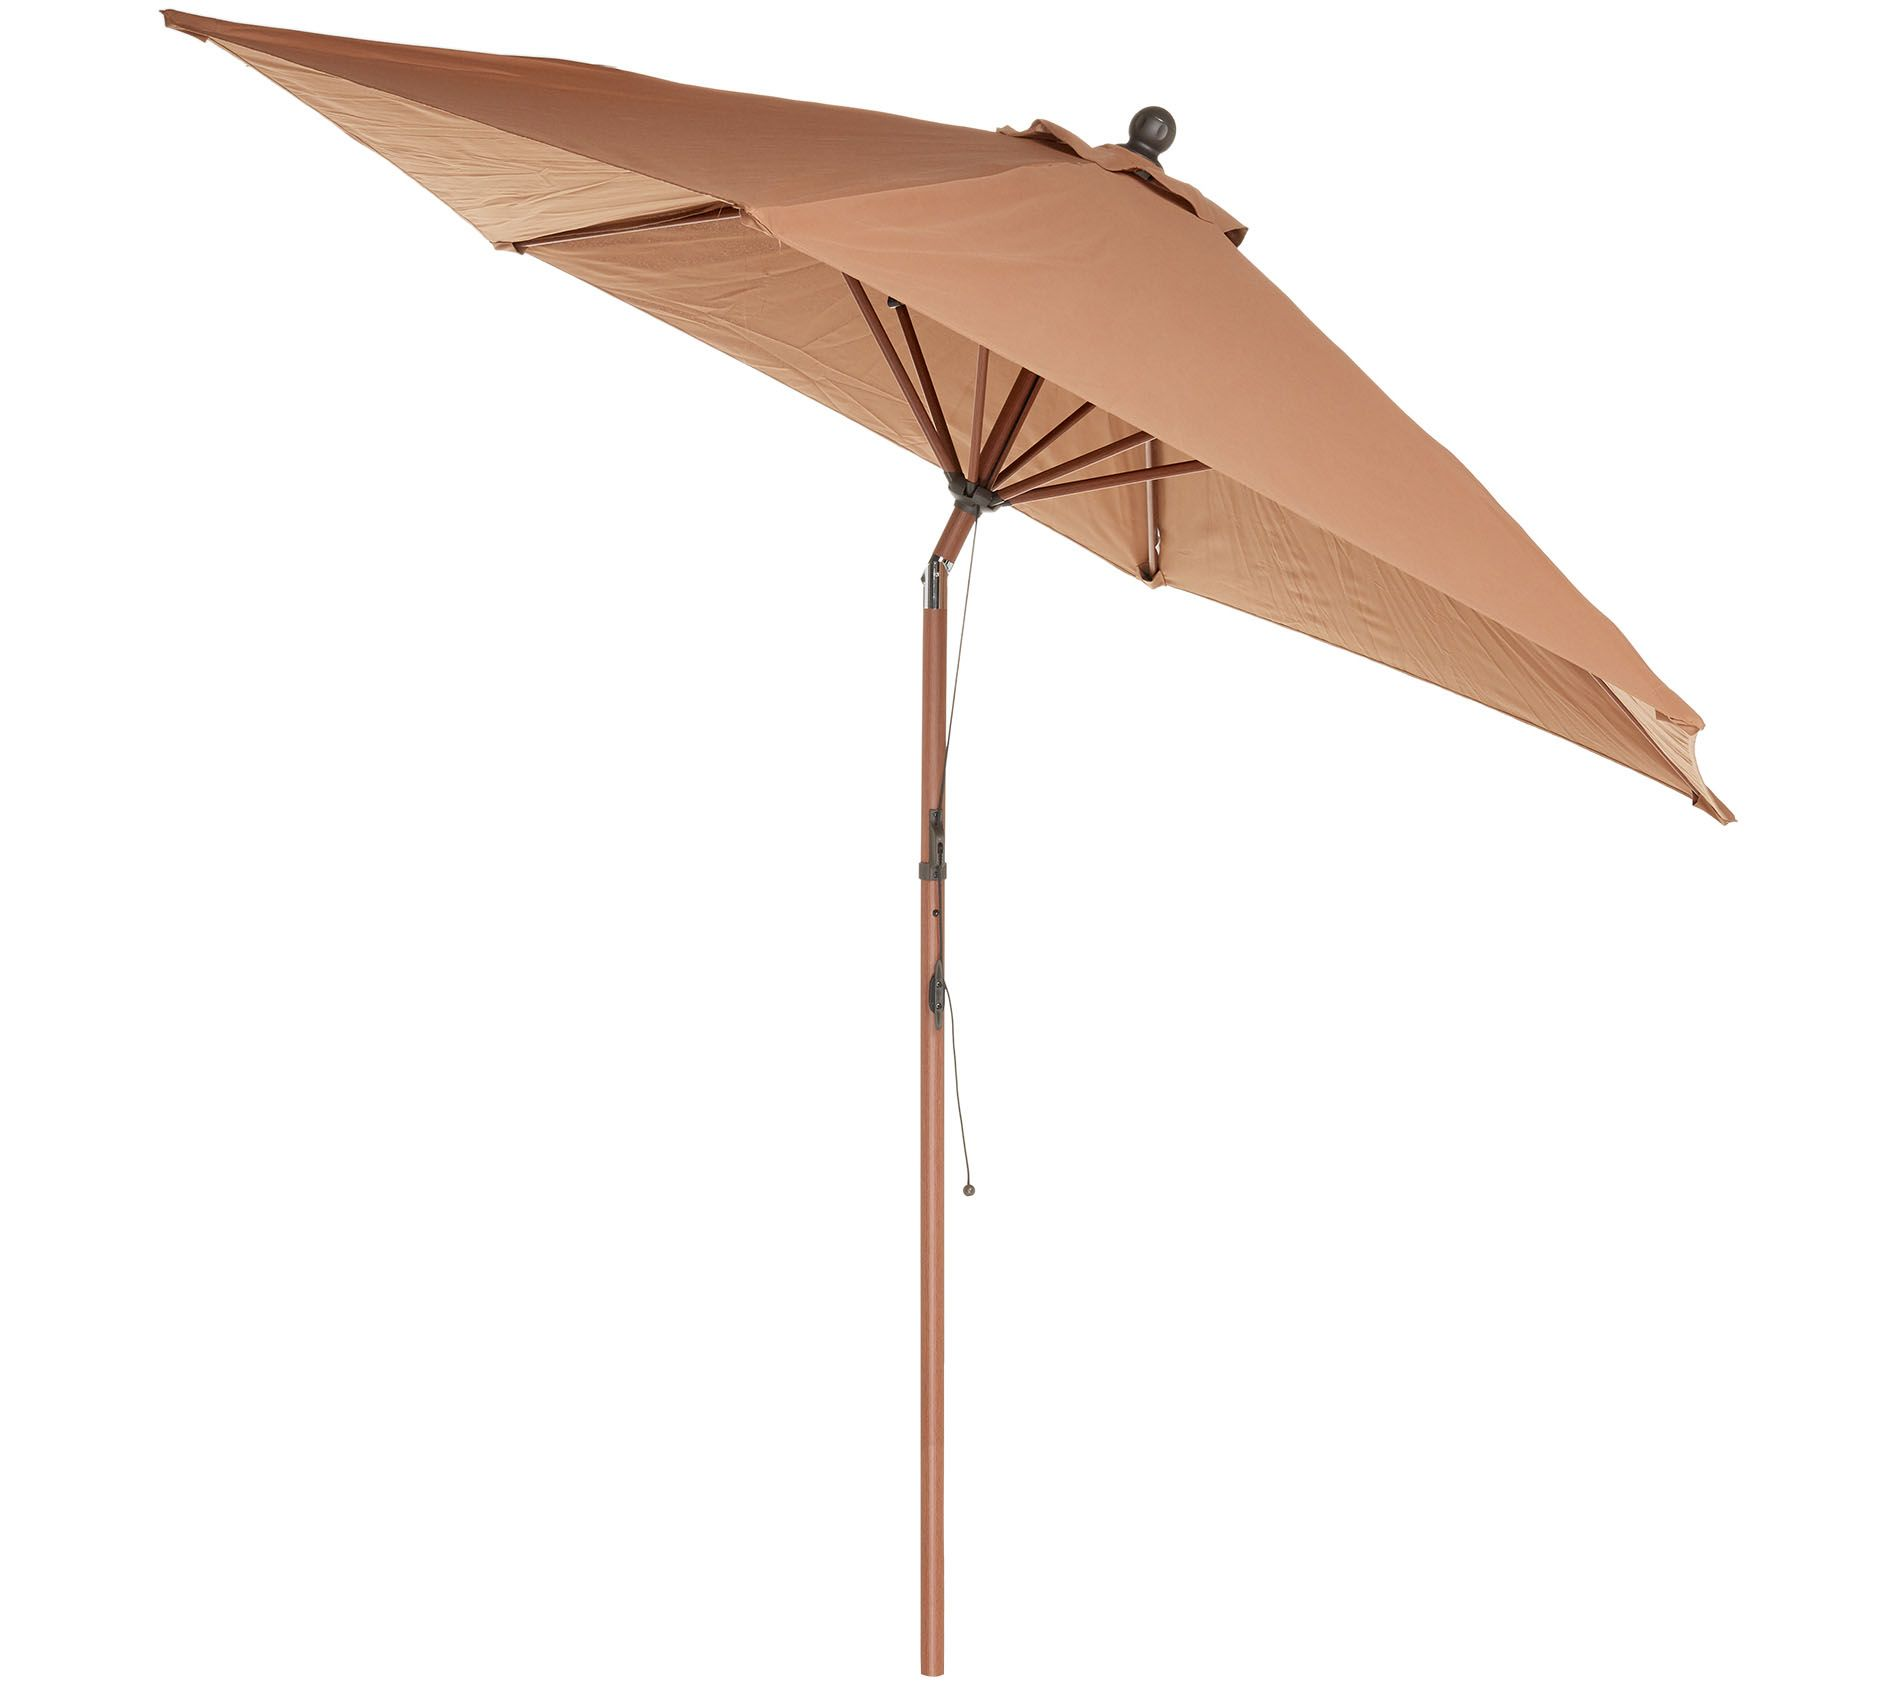 4f5a233bf ATLeisure 9' Round Fade Resistant Easy Open Patio Umbrella - Page 1 —  QVC.com